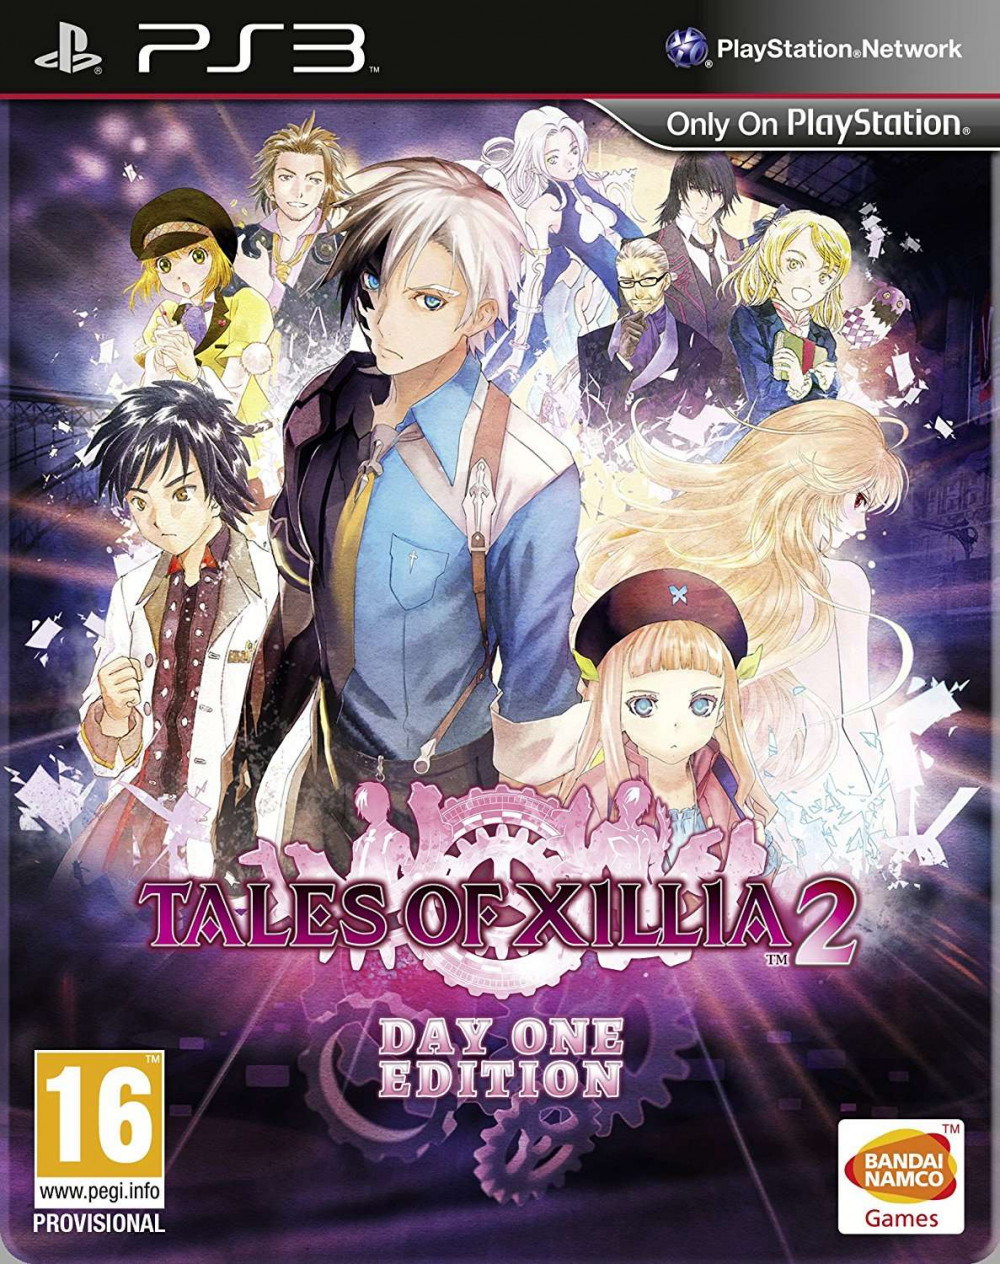 PS3 Tales of Xillia 2 Day One Edition (Steelbook)